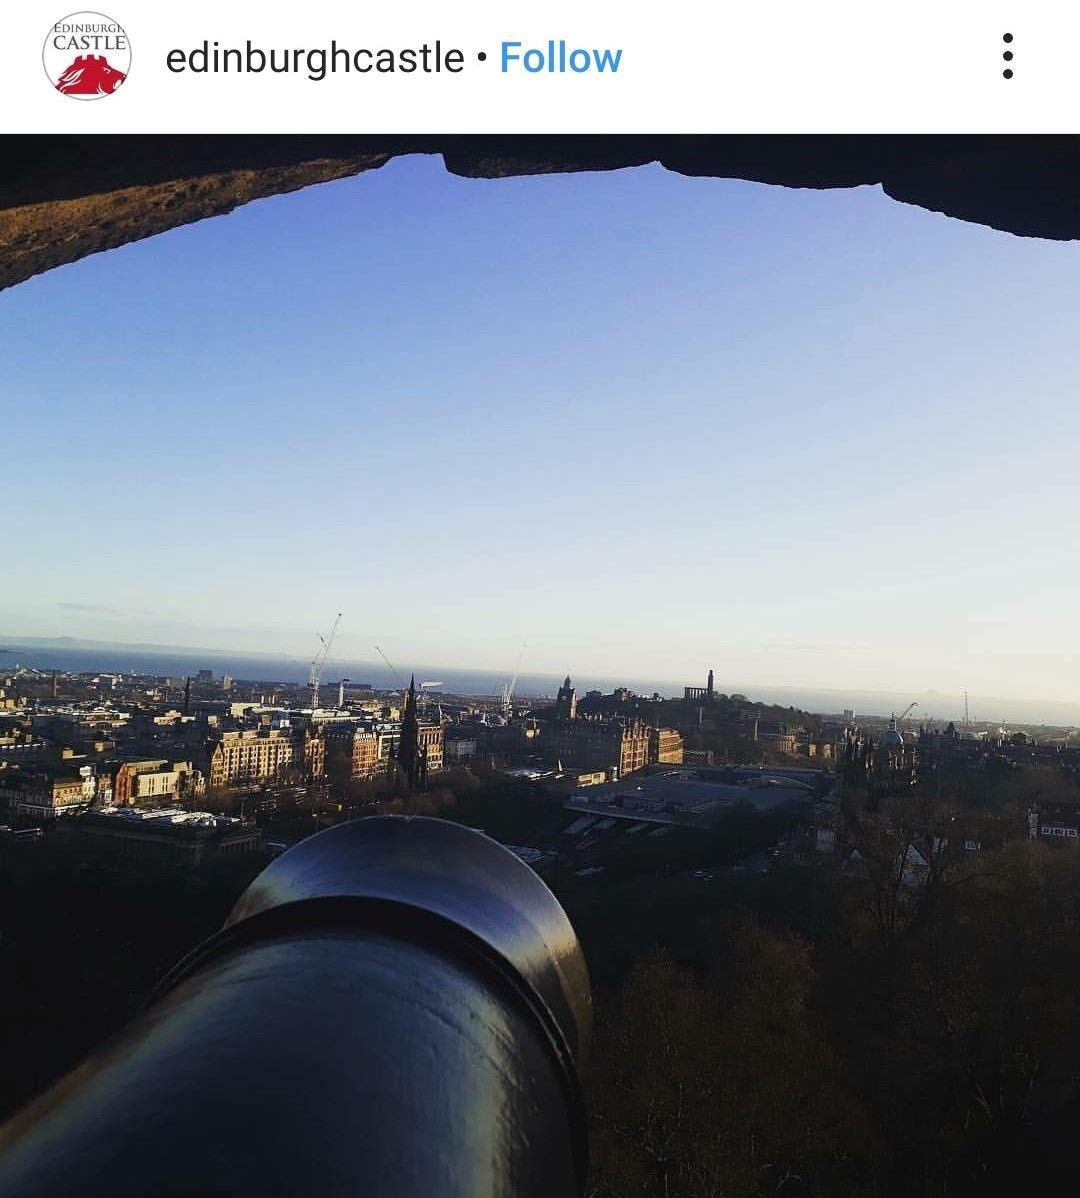 View of the city of Edinburgh from the castle.